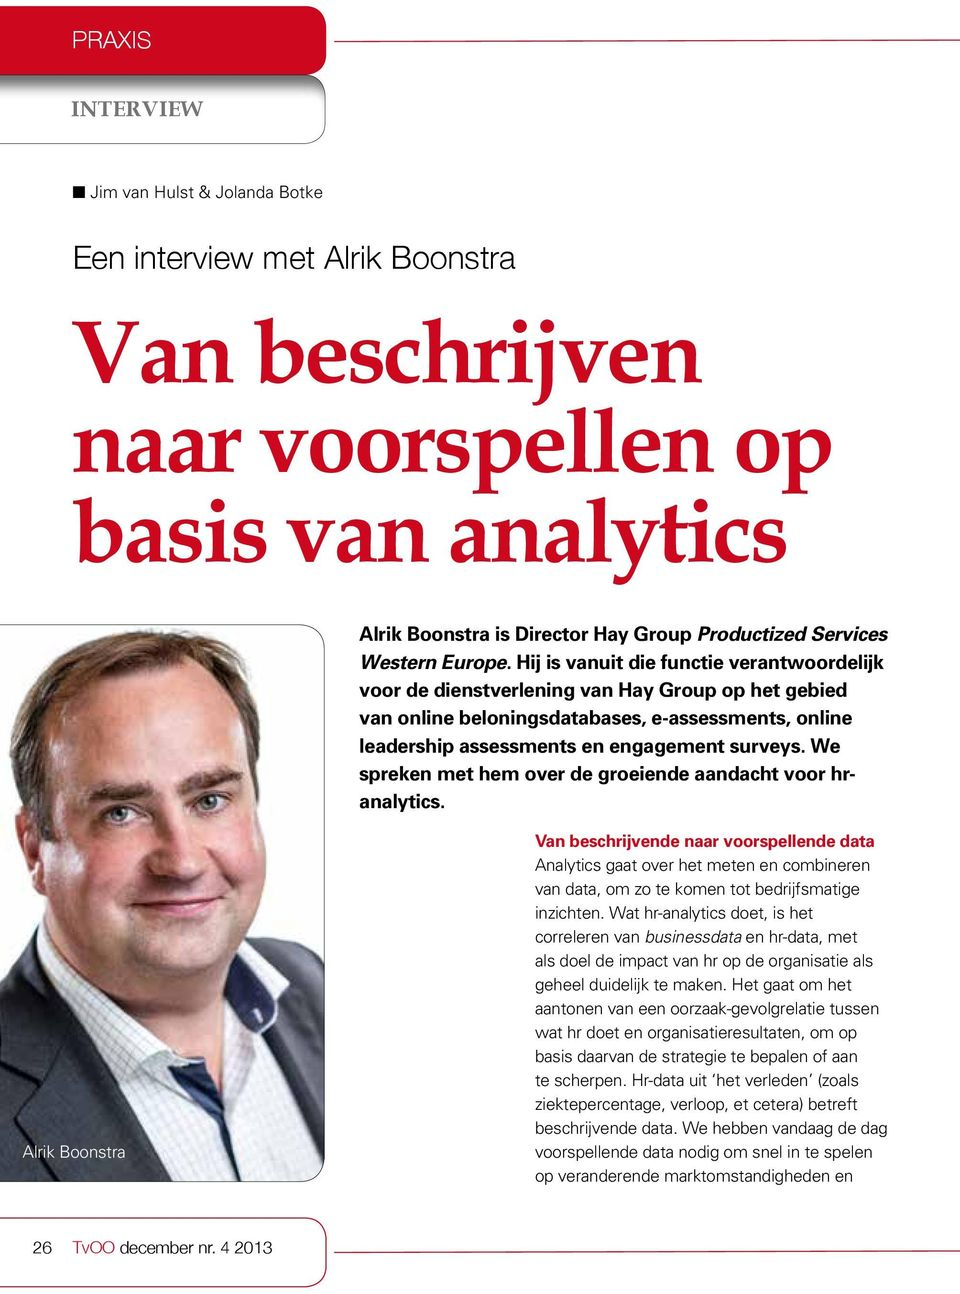 Hij is vanuit die functie verantwoordelijk voor de dienstverlening van Hay Group op het gebied van online beloningsdatabases, e-assessments, online leadership assessments en engagement surveys.